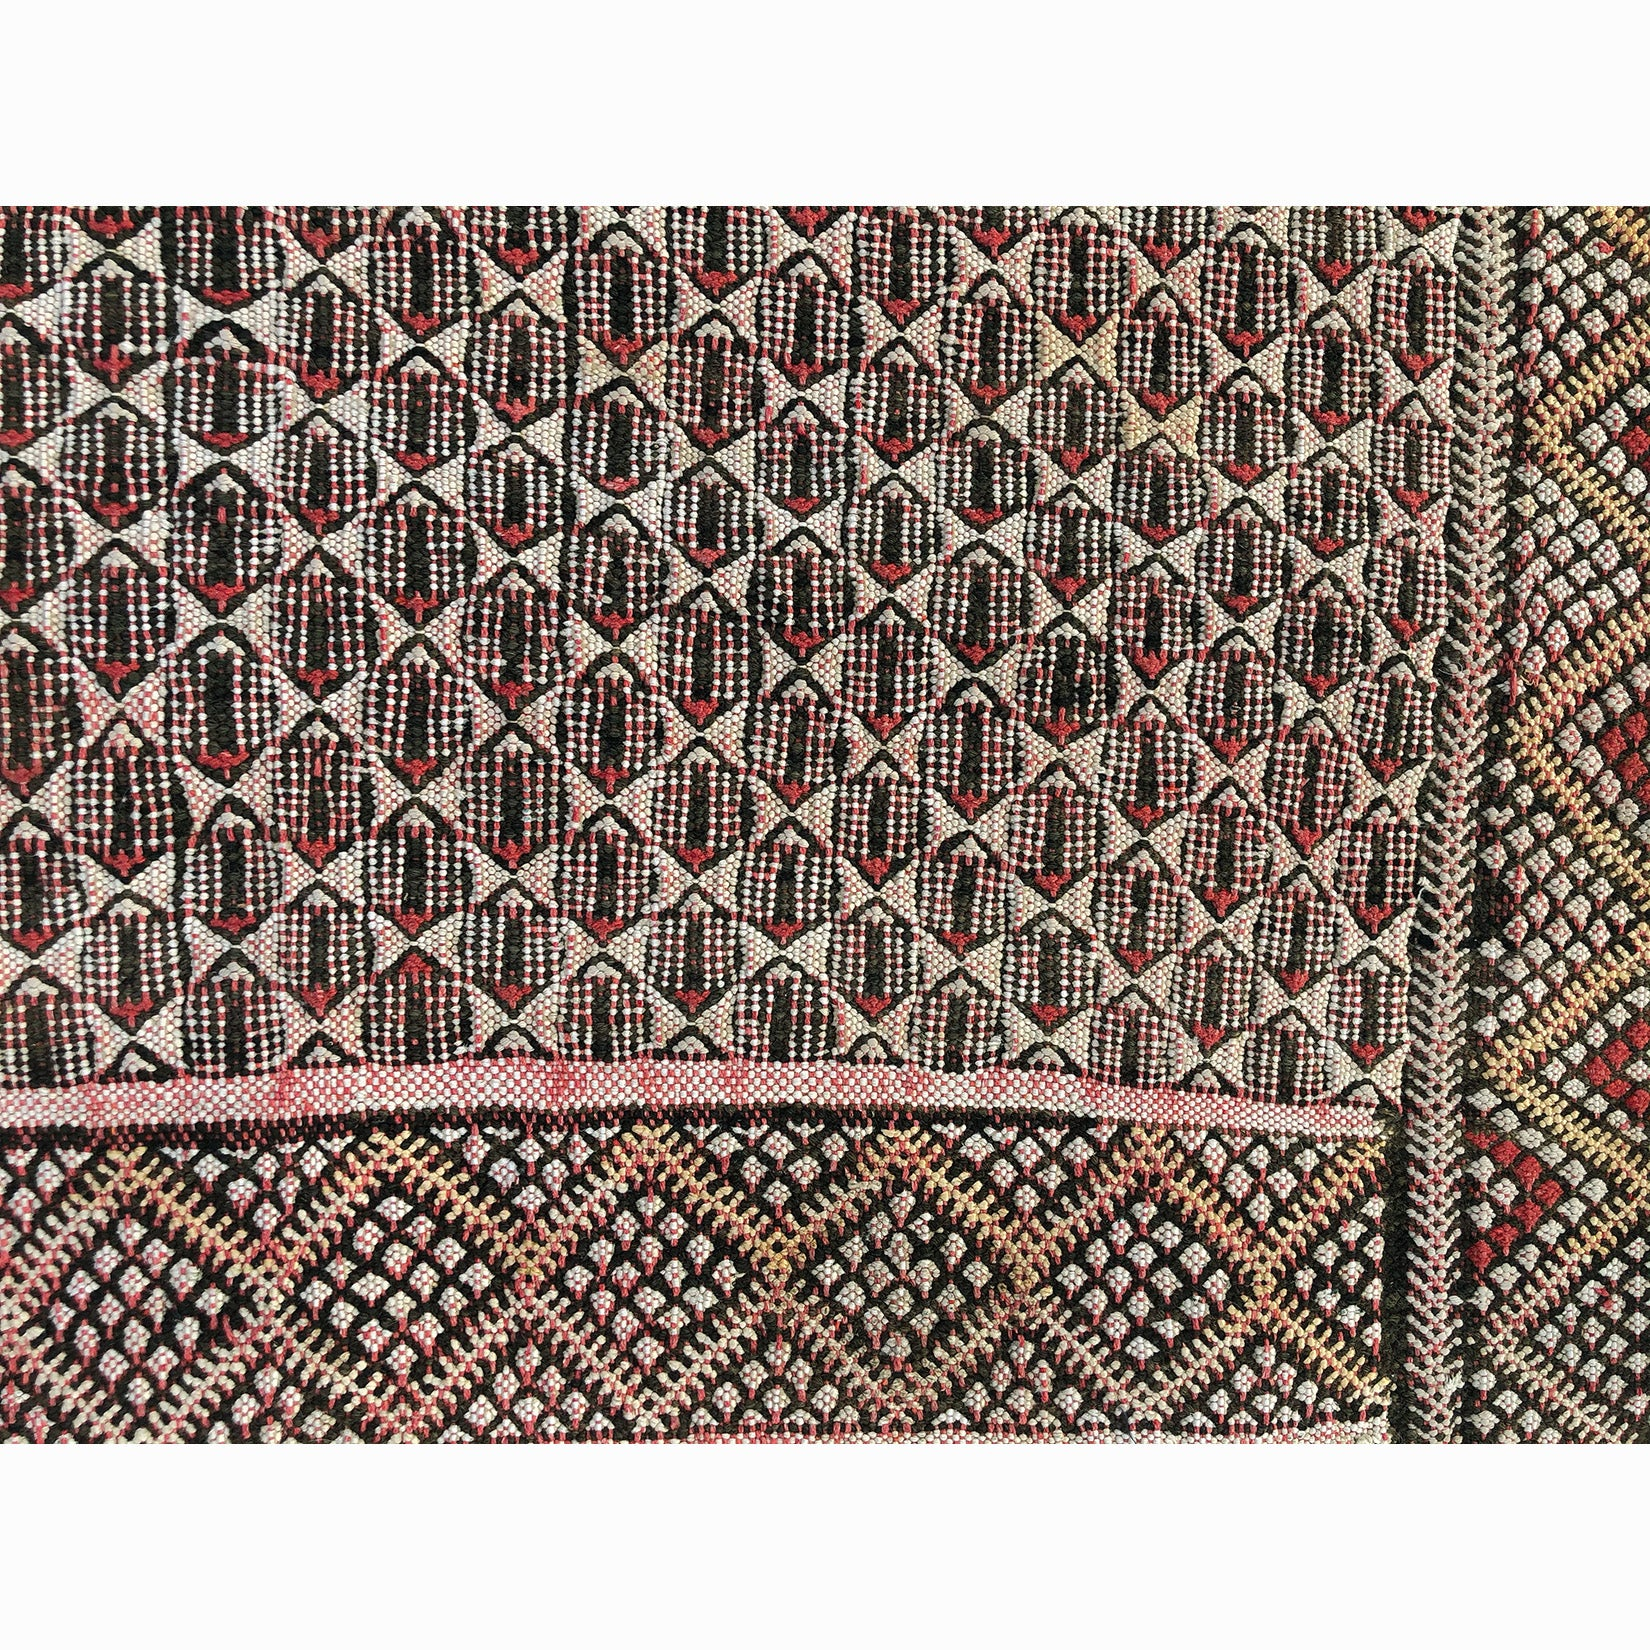 Authentic red tribal berber carpet - Kantara | Moroccan Rugs